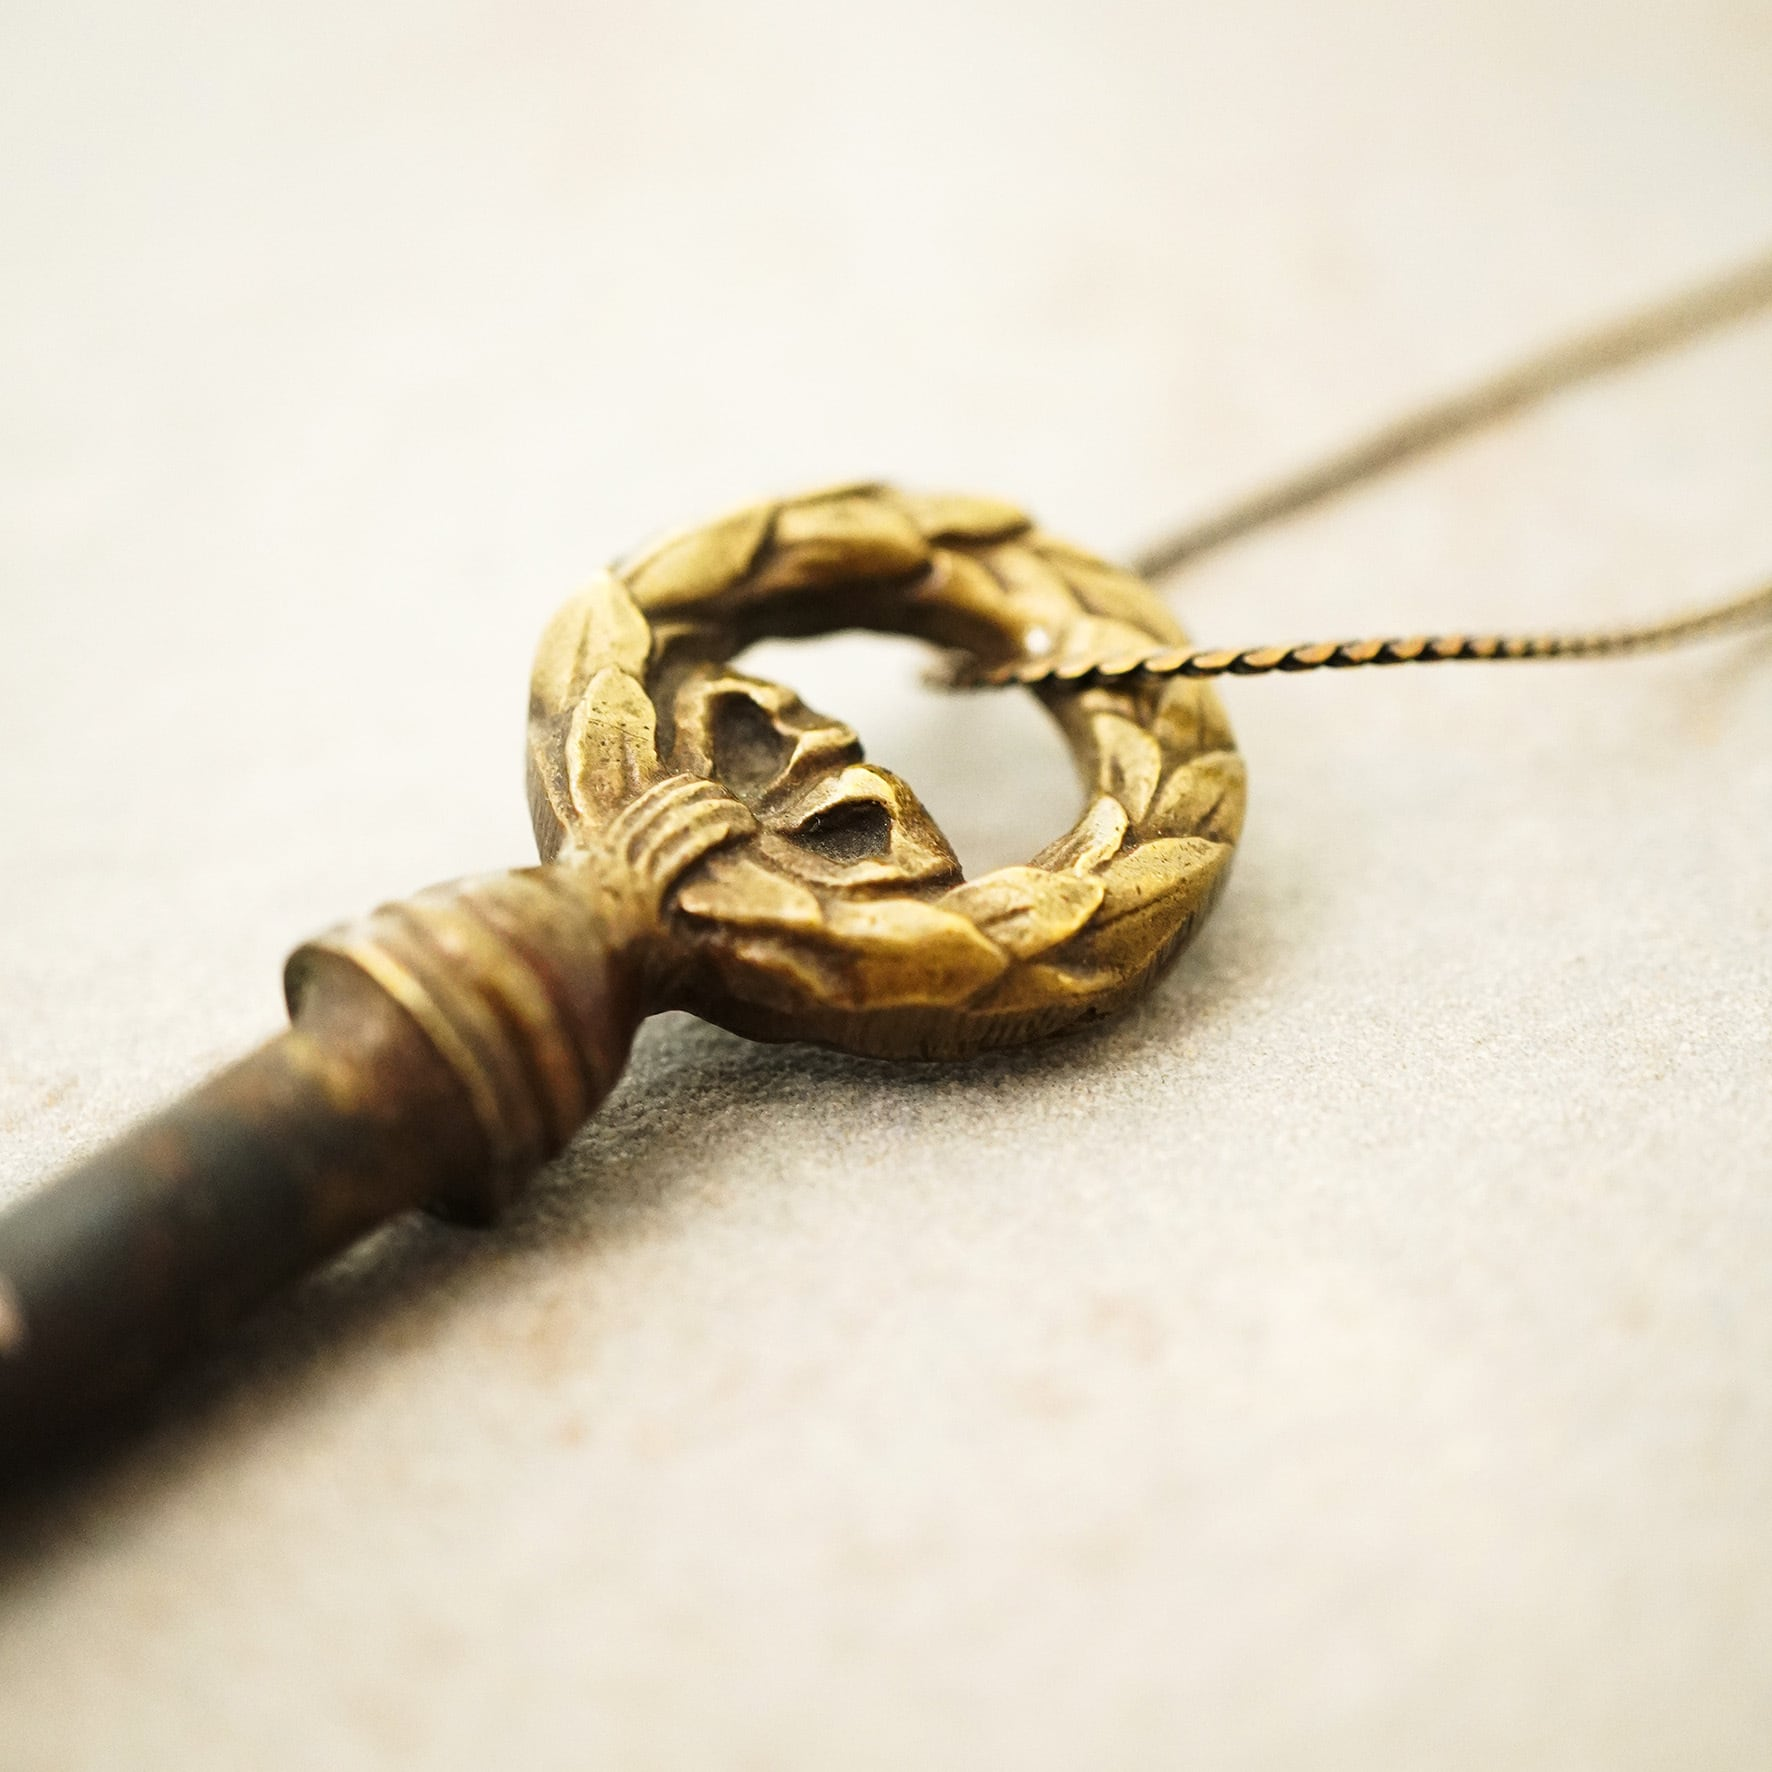 【FRENCH ANTIQUE】KEY CHARM NECKLACE / C